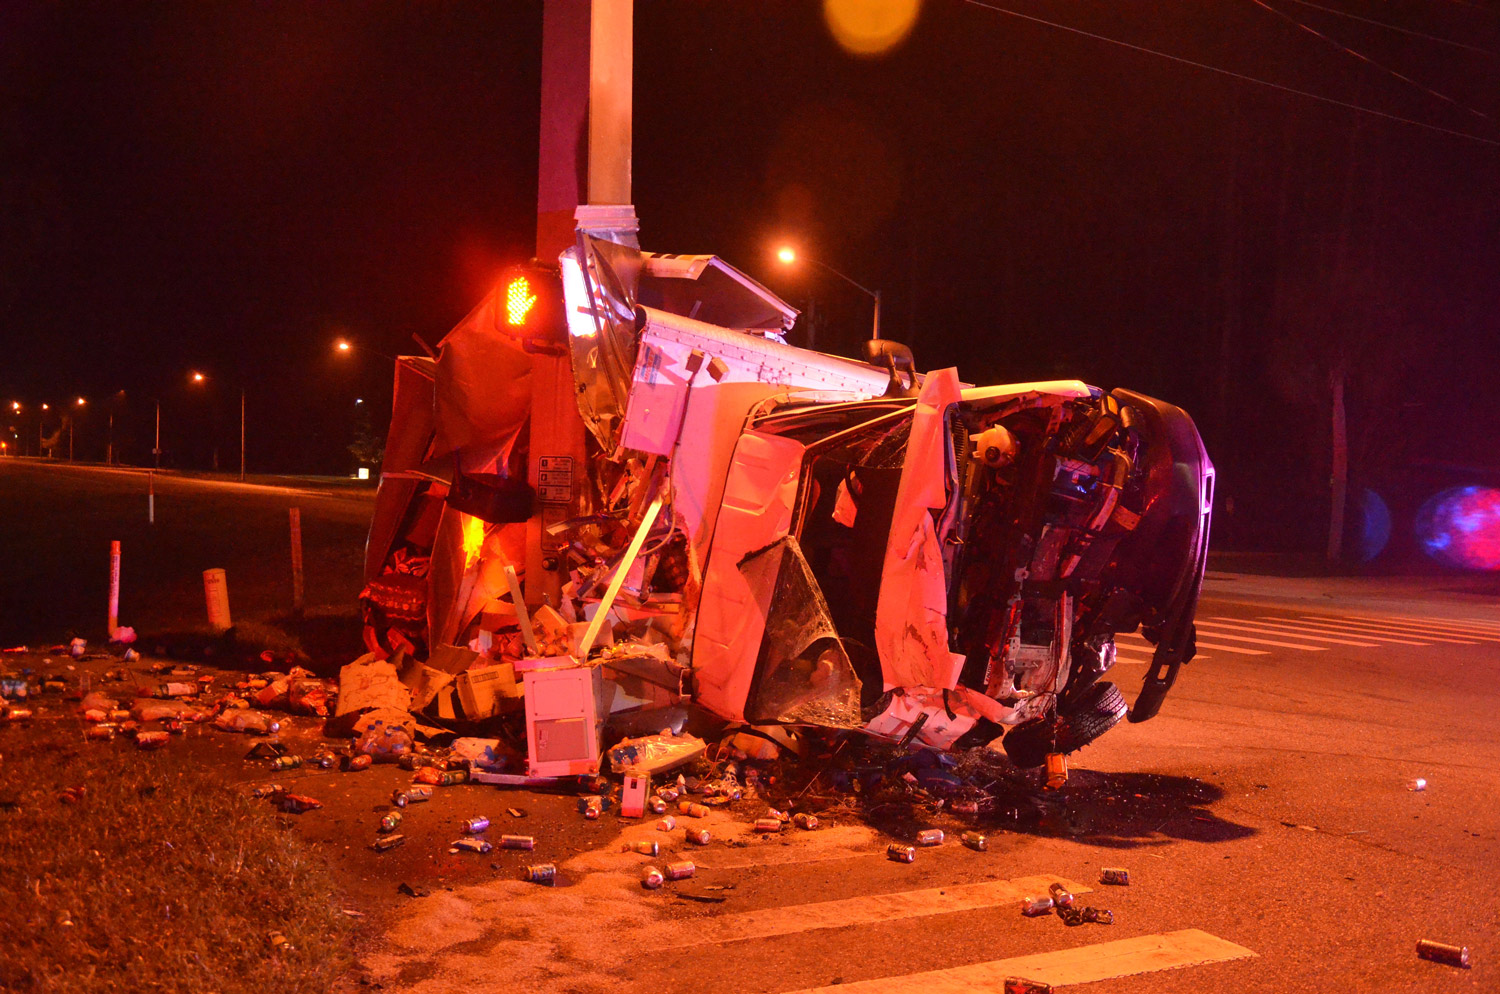 The Canteen junk-food delivery truck was criushed against a concrete light pole at Palm Coast Parkway and Belle Terre Parkway before dawn this morning. Click on the image for larger view. (© FlaglerLive)